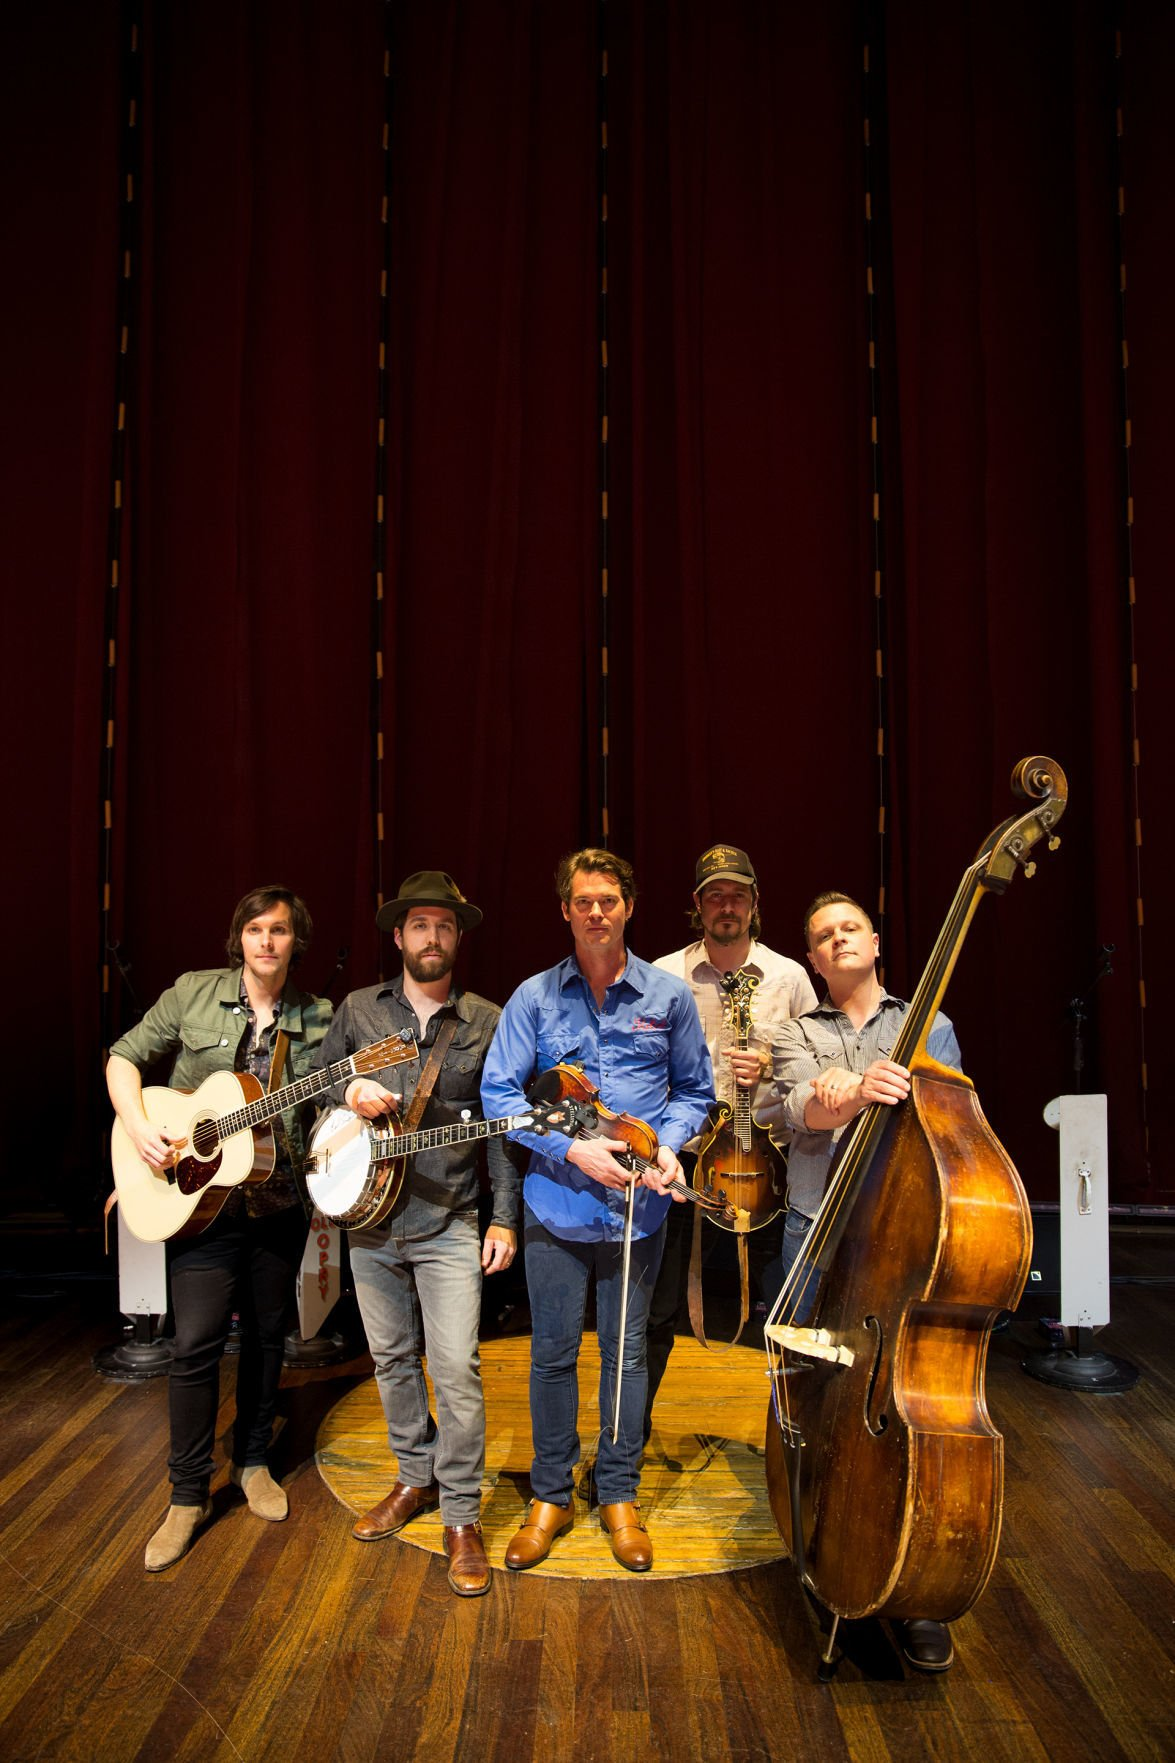 The Old Crow Medicine Show band will perform on Nov. 17.